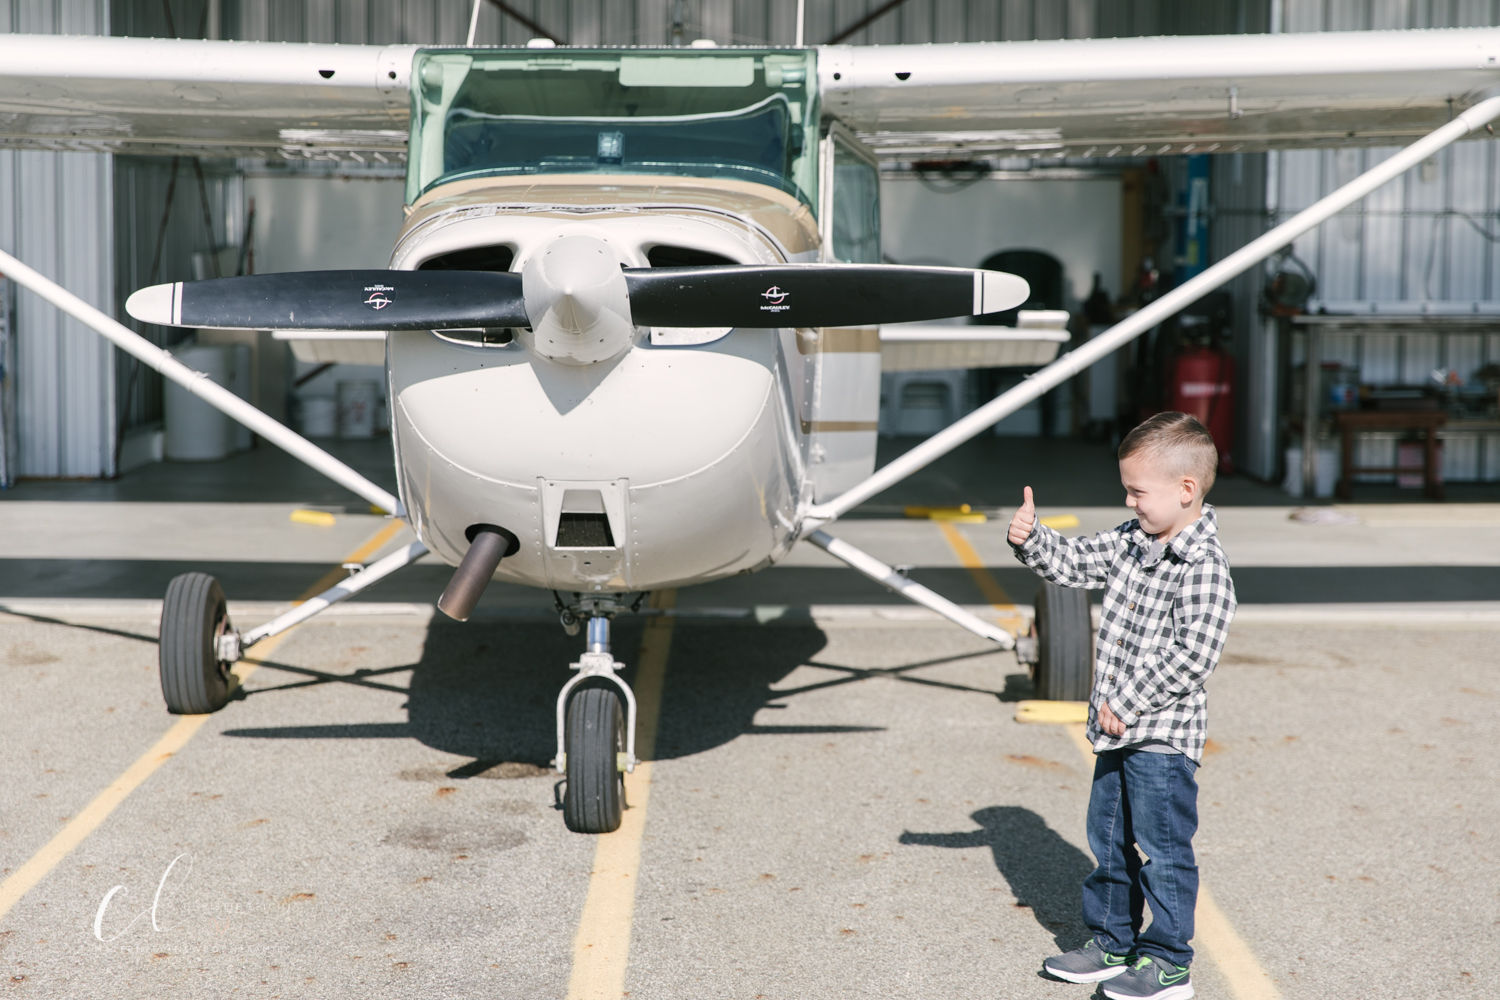 Aviation_Themed_Fourth_Birthday_at_Youngstown_Airport_Hanger_Vienna_OH_by_Child_and_Family_Photographer_Christie_Leigh_Photo-1.JPG